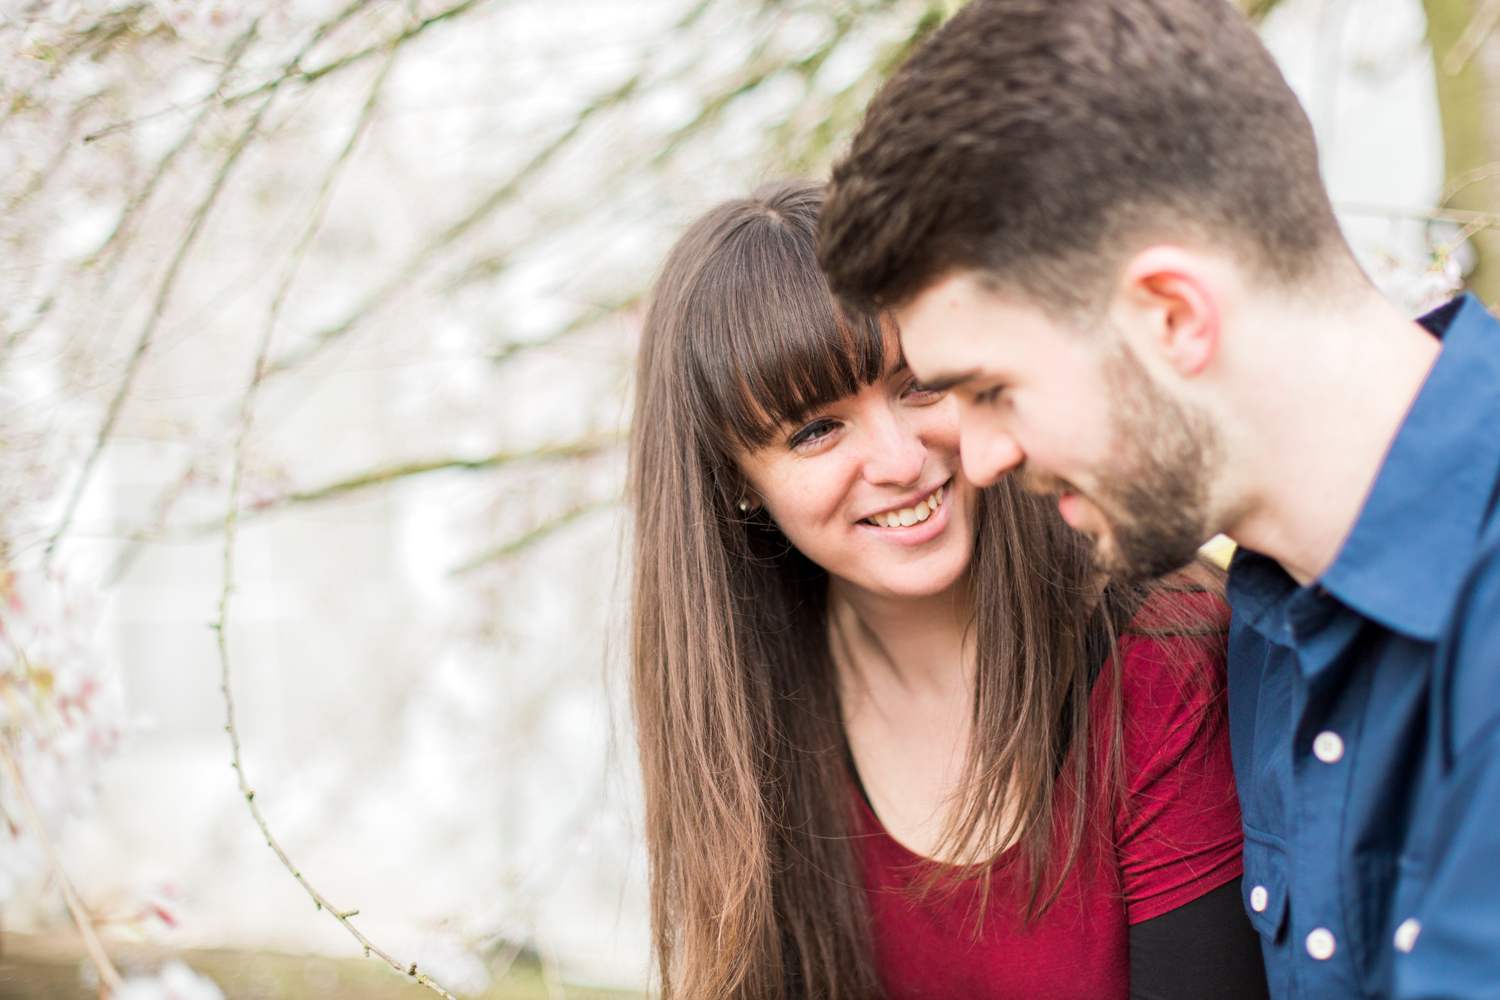 Sophie Evans Photography, Alice & Nathanael Botanical Gardens Engagement Shoot. Warwickshire Wedding Photographer (26).jpg